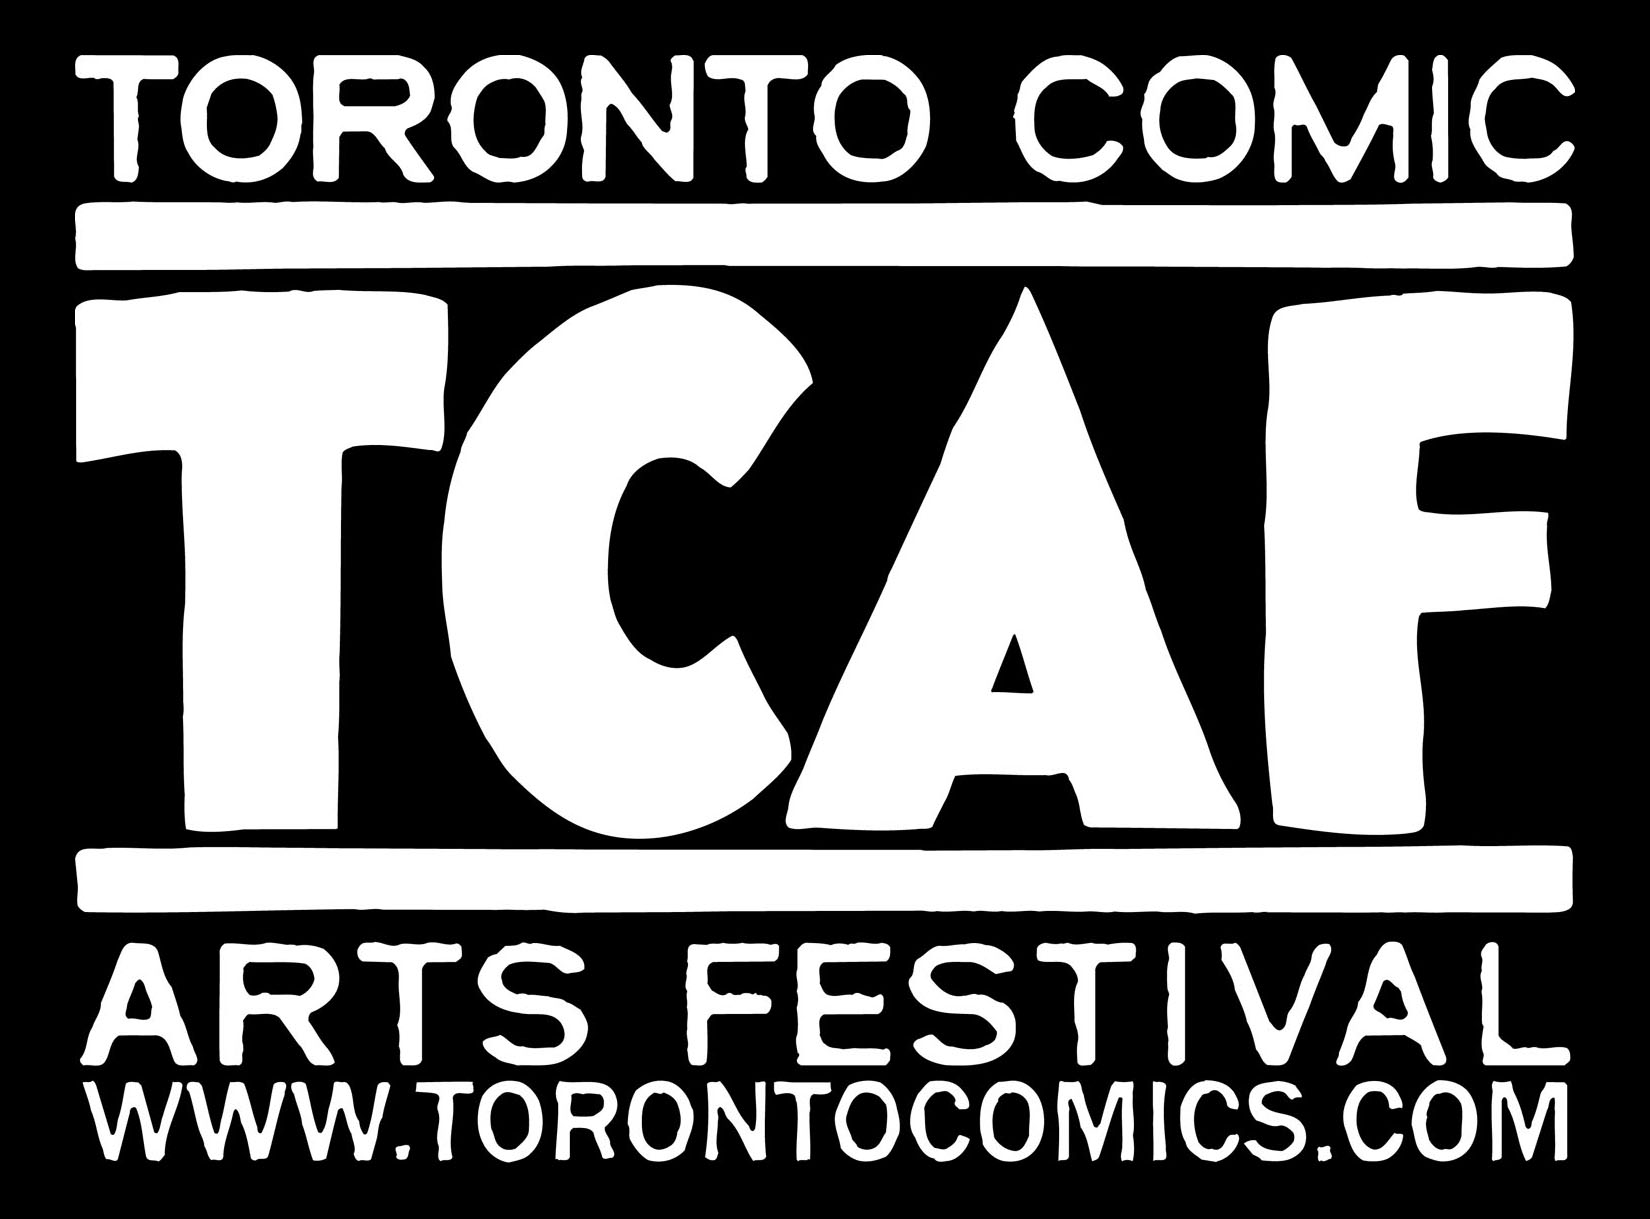 toronto comics and arts festival logo